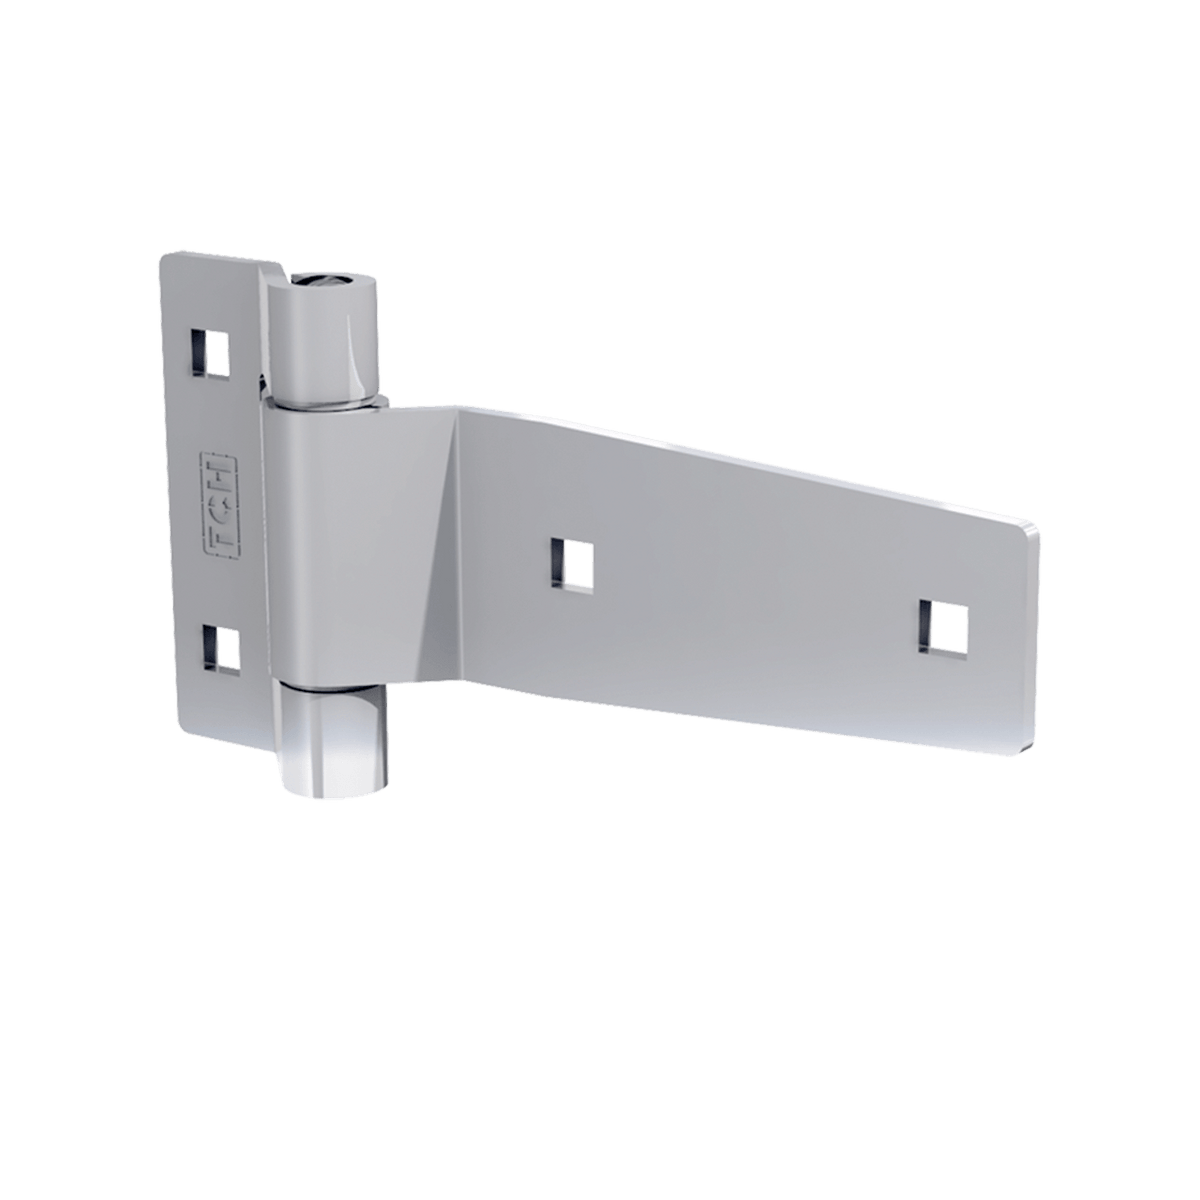 "3"" Polished Stainless Steel Strap Hinge, 3/4 view"